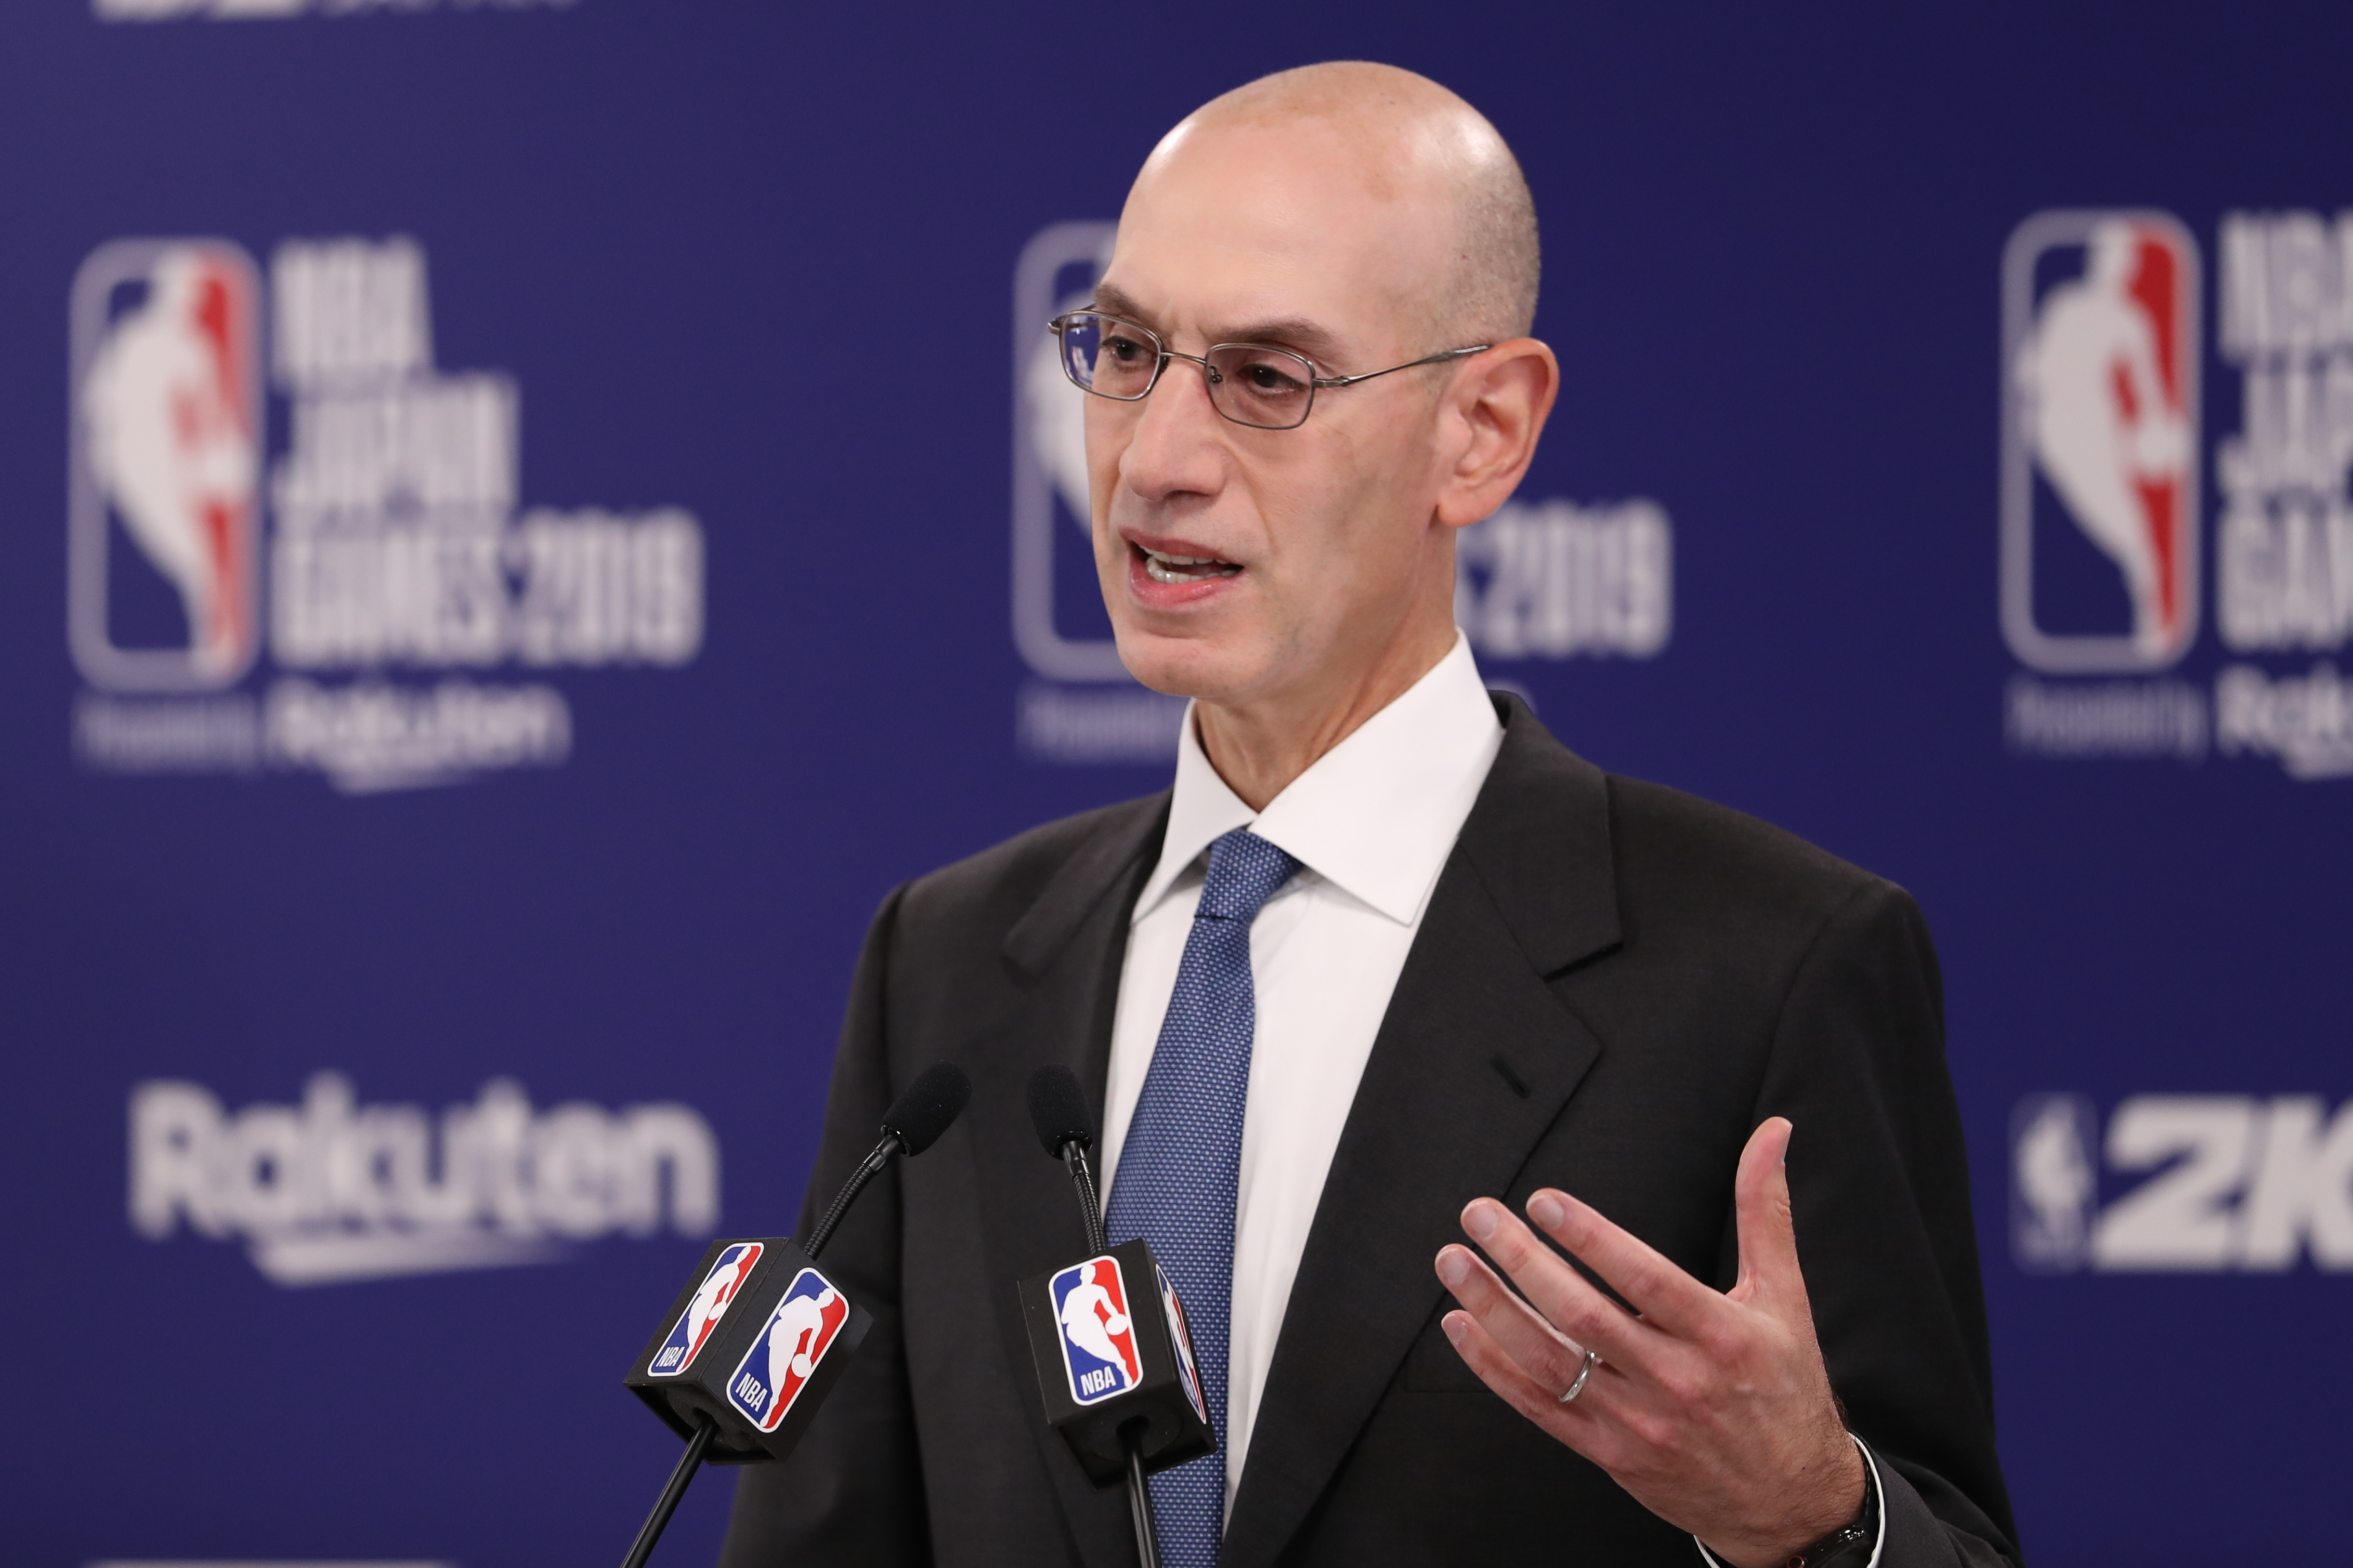 NBA DILLY DALLYING WHETHER TO RESTART OR NOT